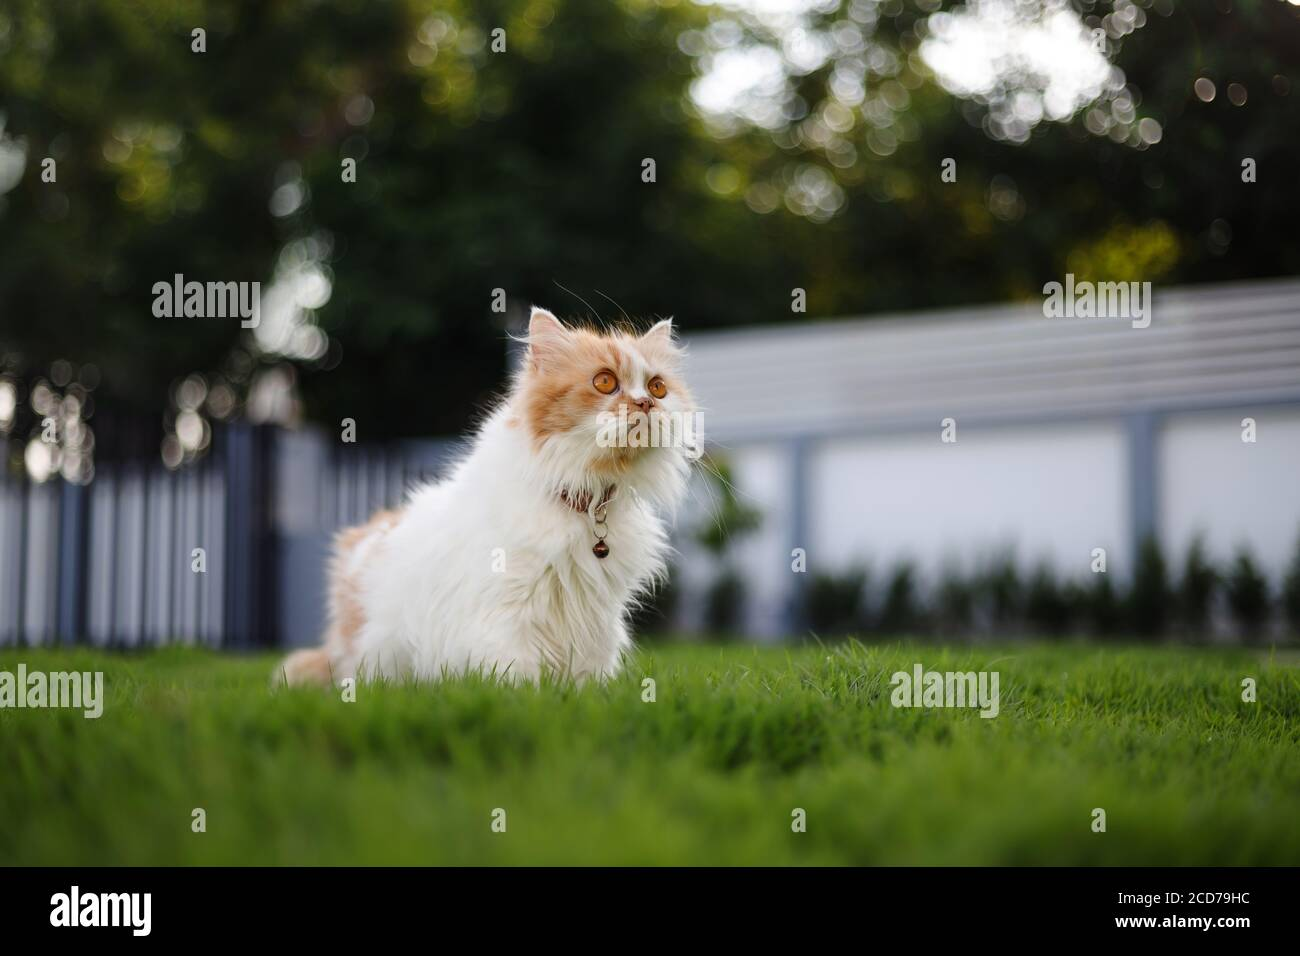 The cute Persian cat sitting on a green grass field, and looking something, selective focus shallow depth of field Stock Photo